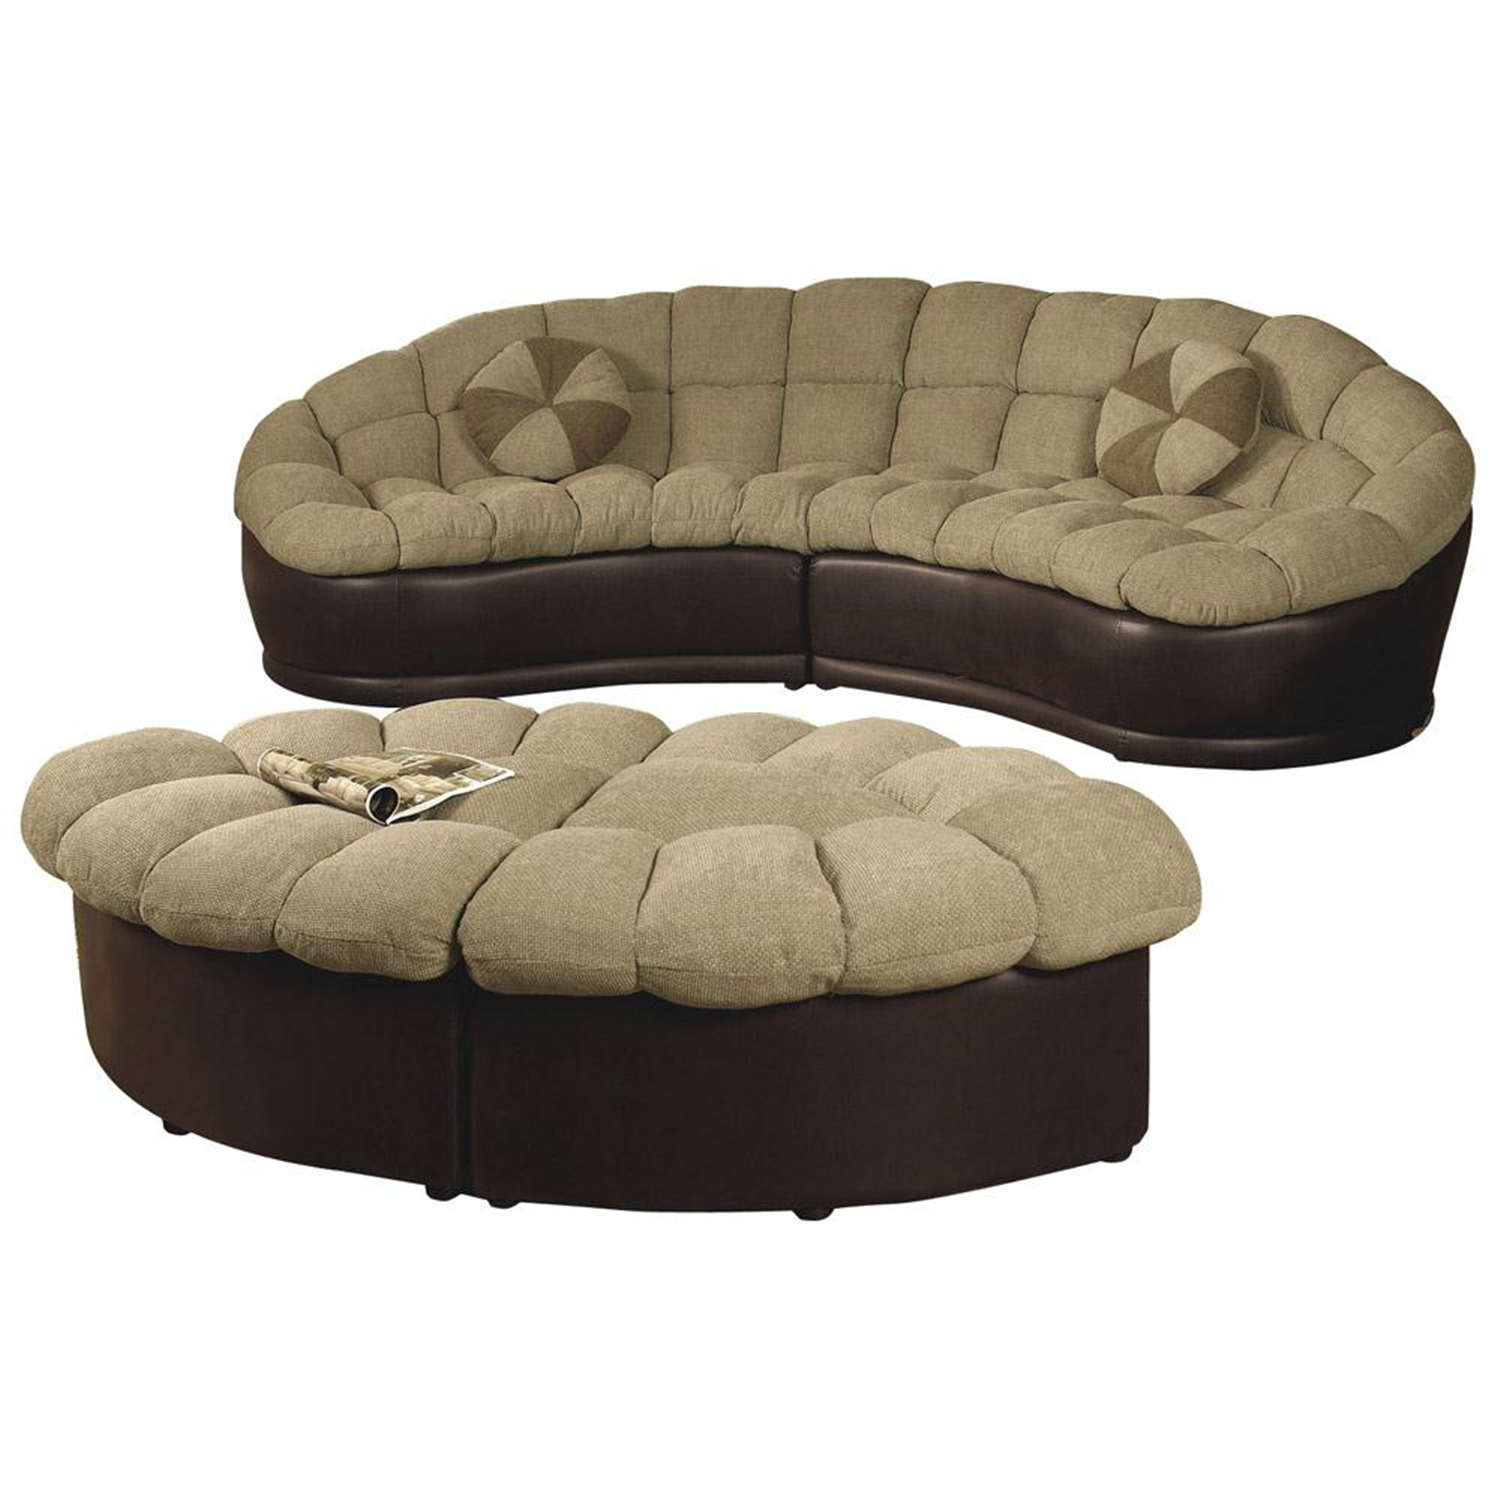 Ore International Love Seat And Ottoman Set By Oj Commerce R8429bge62 2